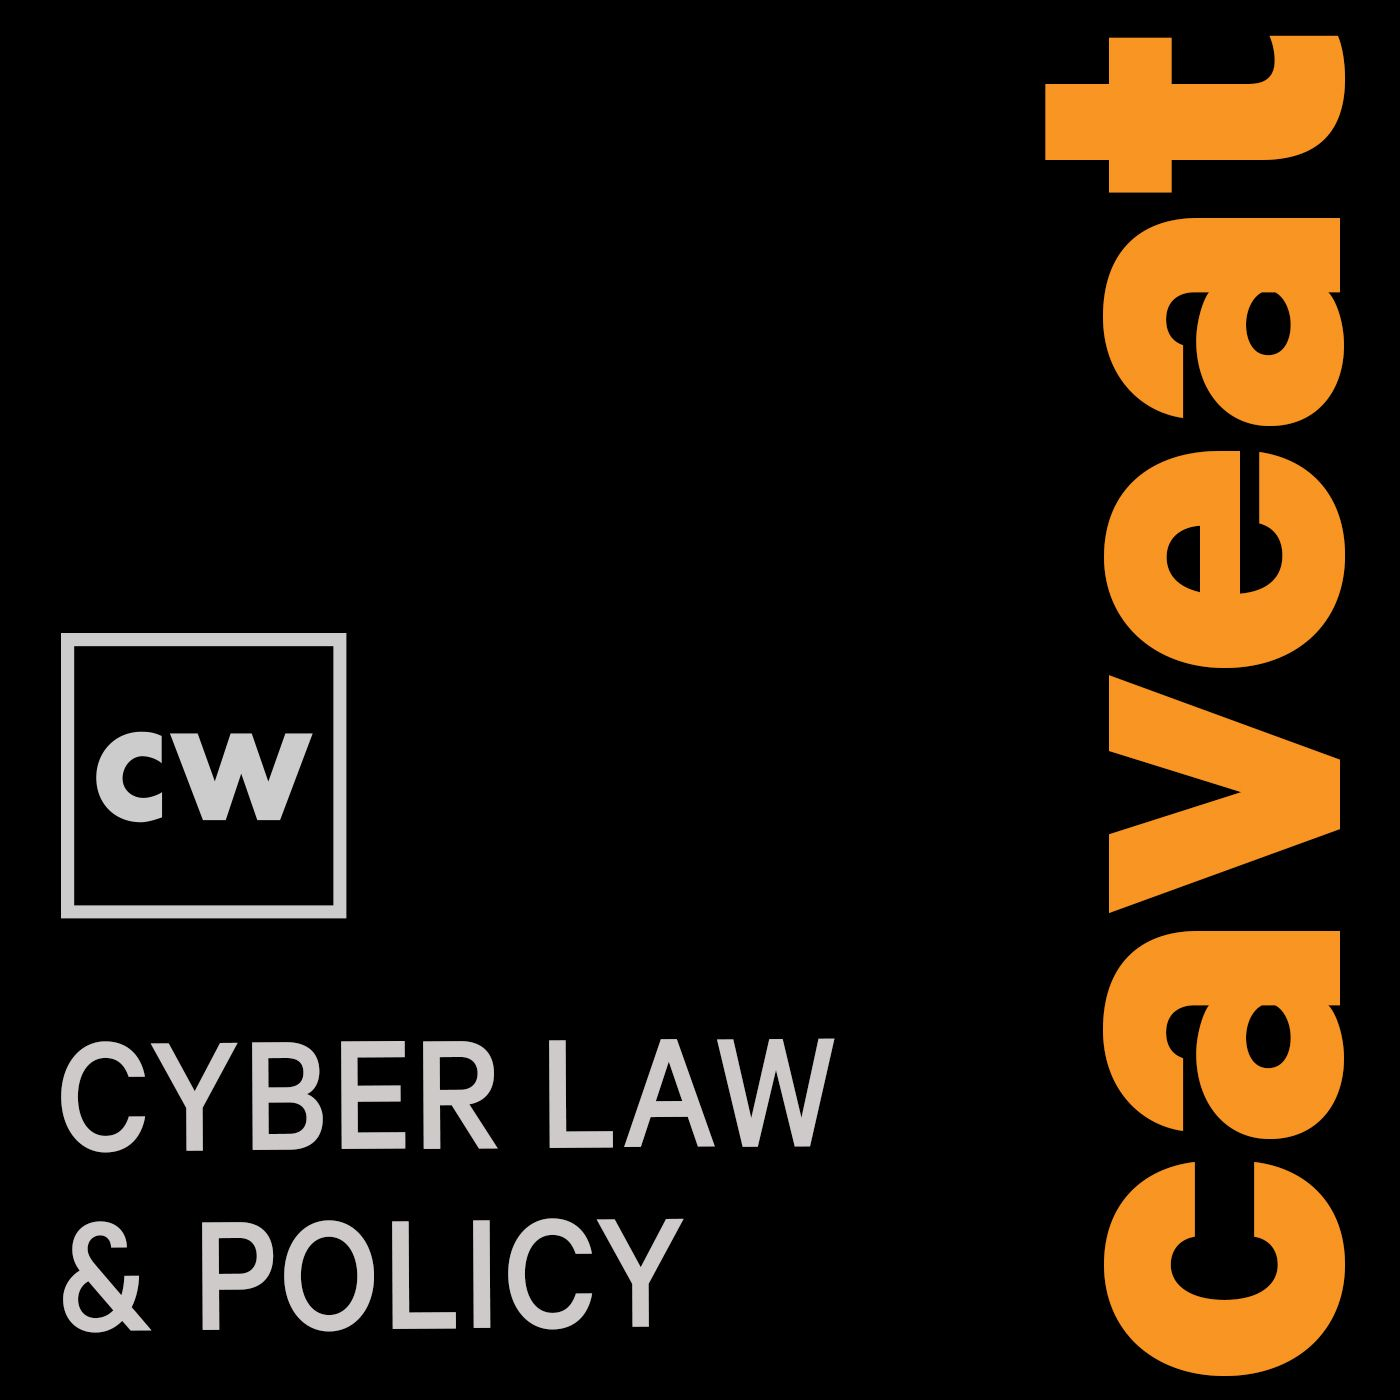 If there's cyberwar, are there cyber war crimes?